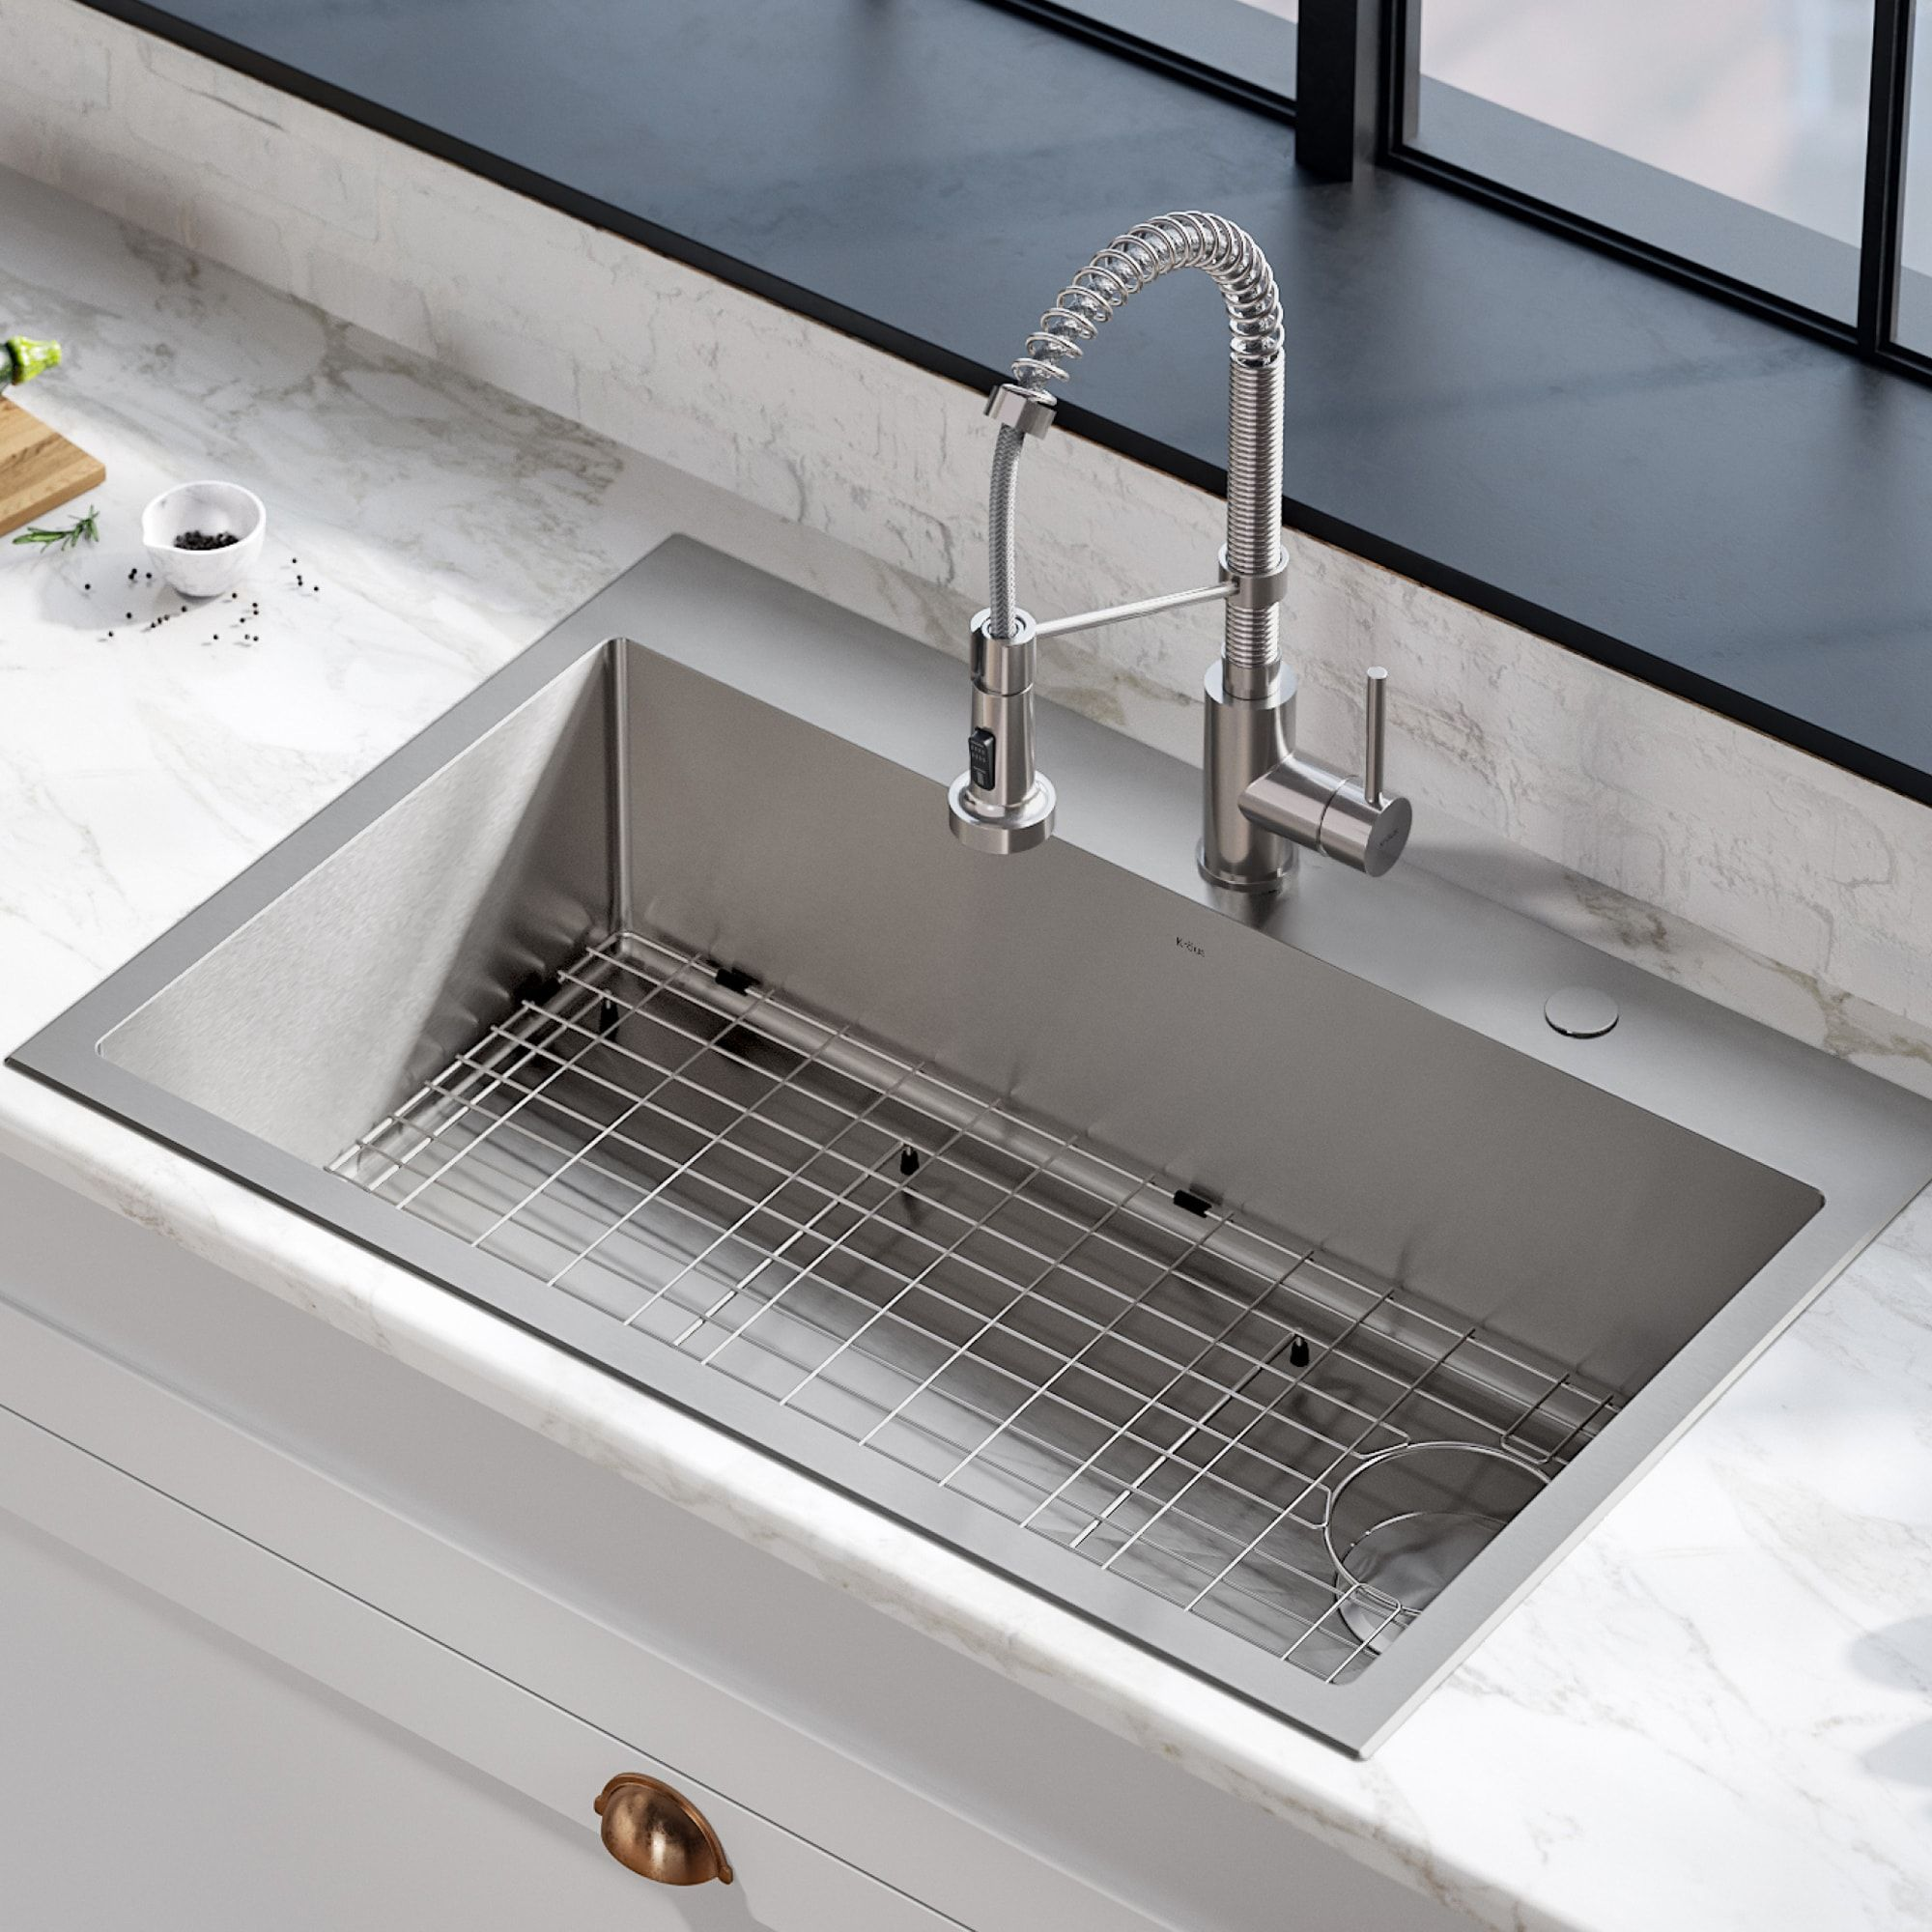 What Makes Stainless Steel Sink A Perfect Choice?